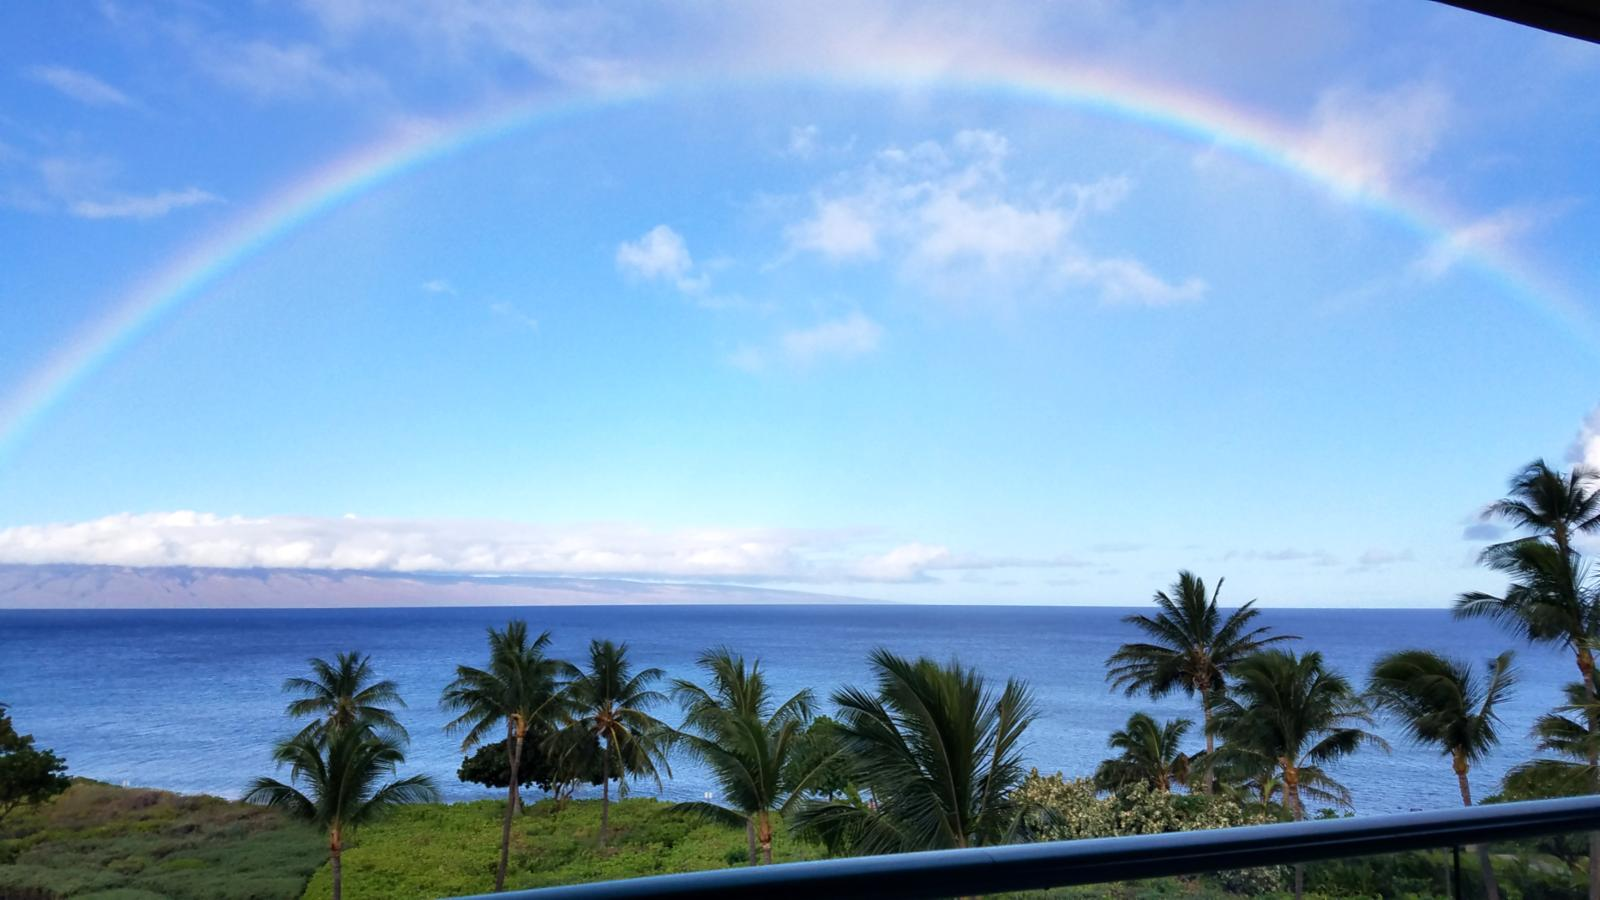 Stunning rainbow as seen from the Lanai